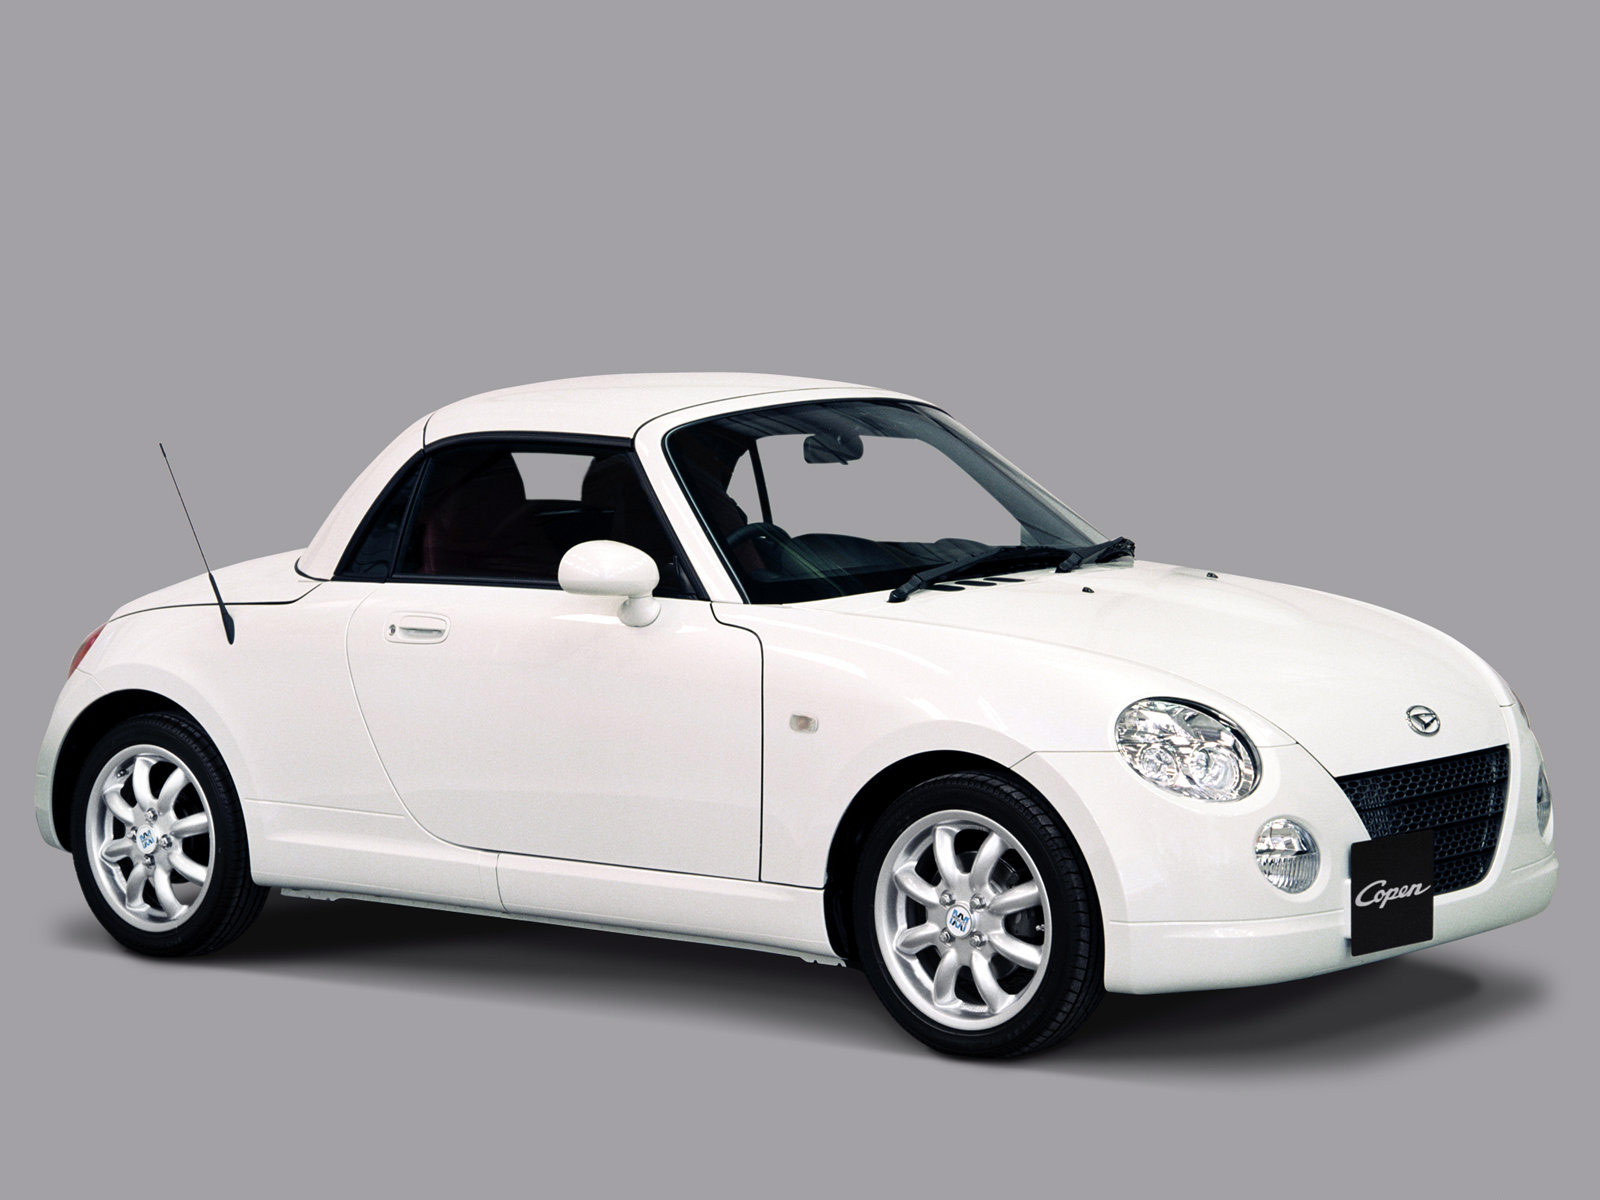 Japan Automobiles Photo.Japanese Car Wallpaper.Car Insurance